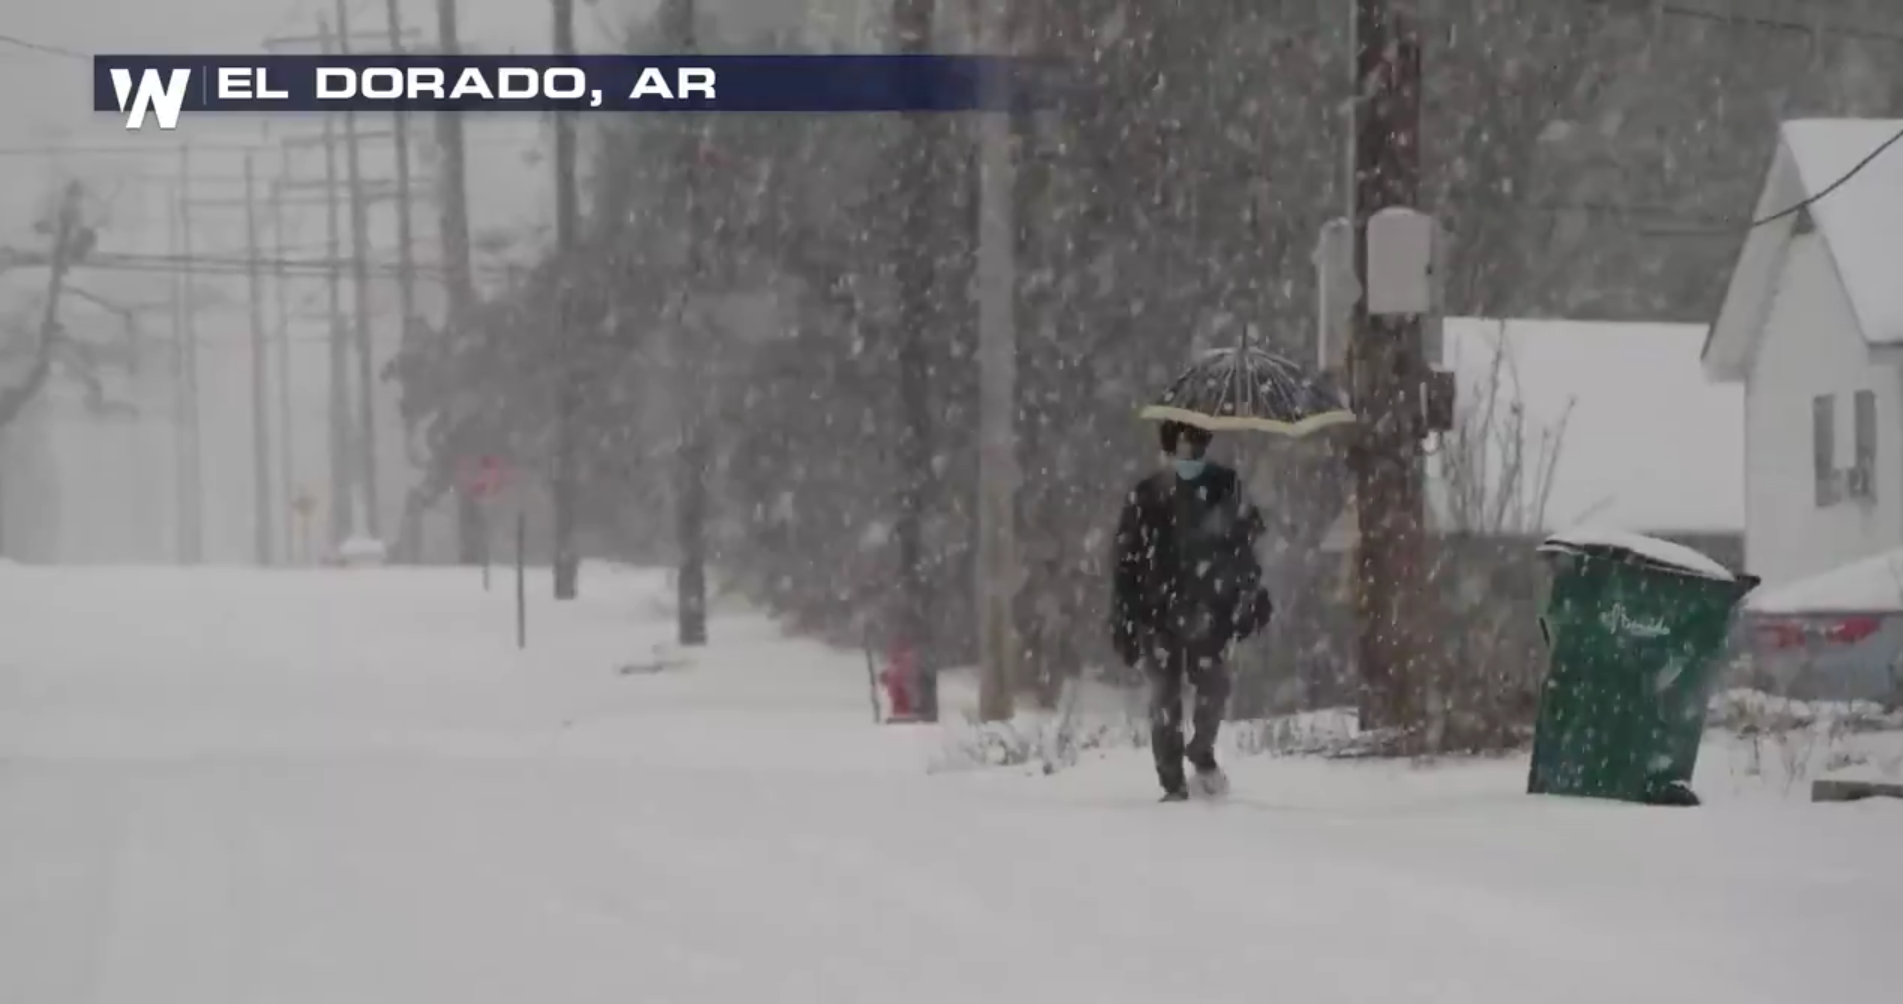 Another Round of Ice and Snow Slamming the South